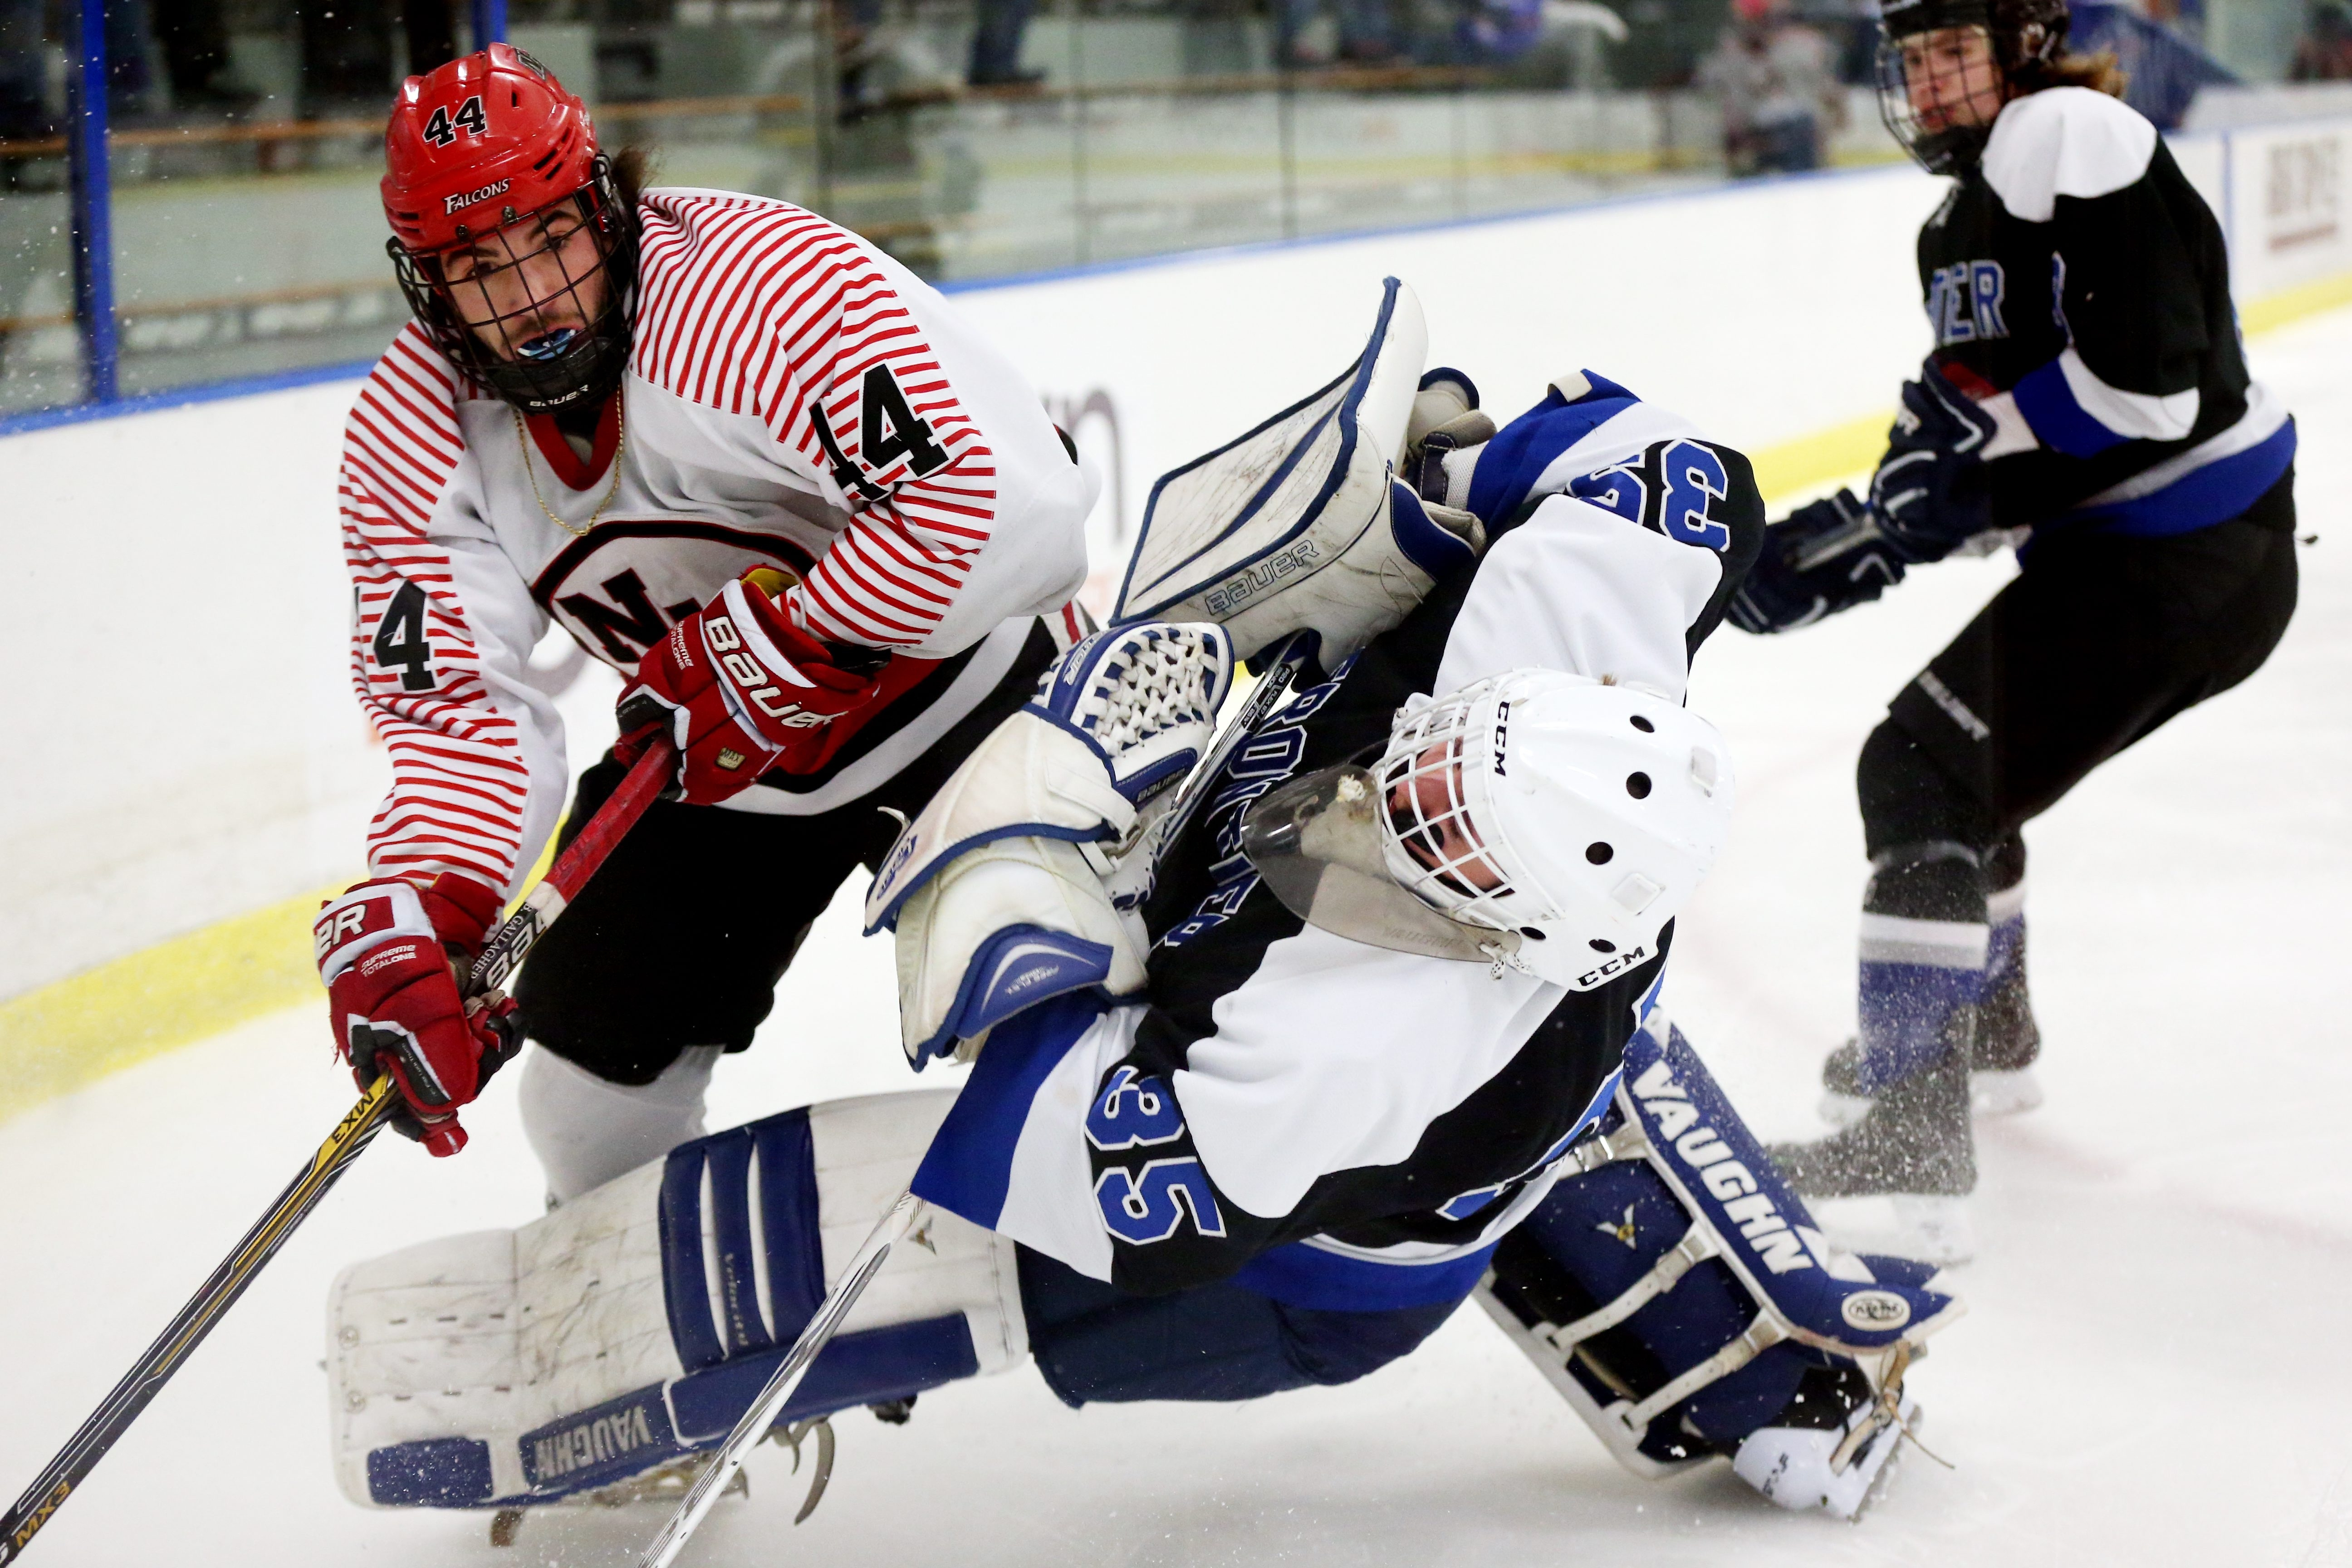 Niagara Wheatfield's Alex Bauer received a penalty for plowing into Frontier goalie Ryan Kaska.